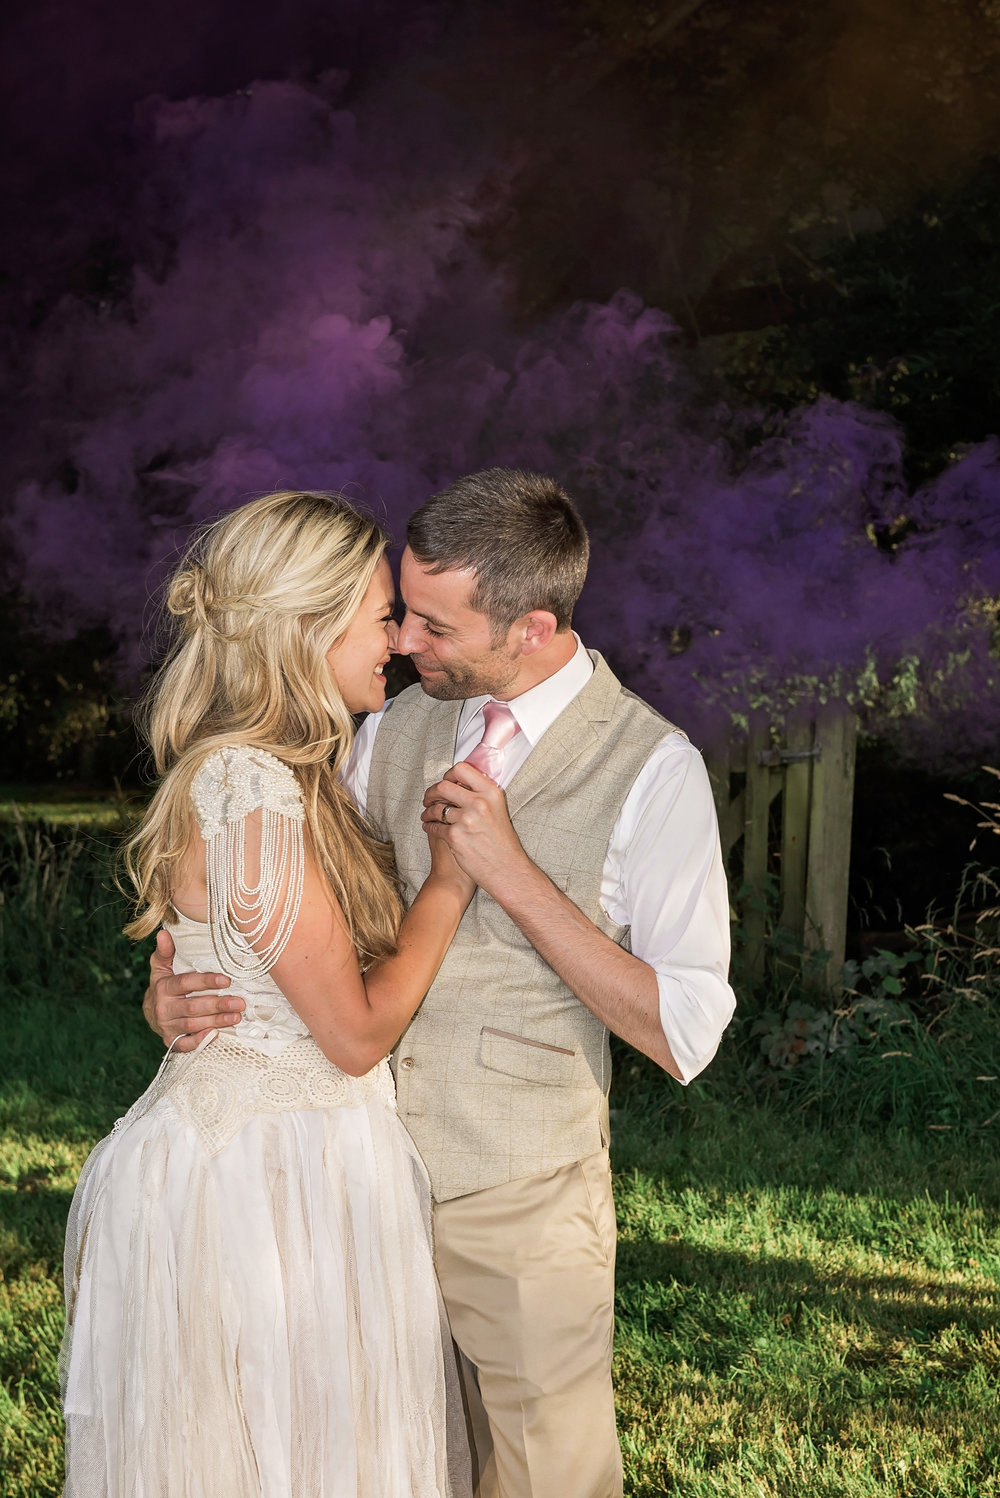 Emily and Allan Wedding 30.07.2016-1342.JPG